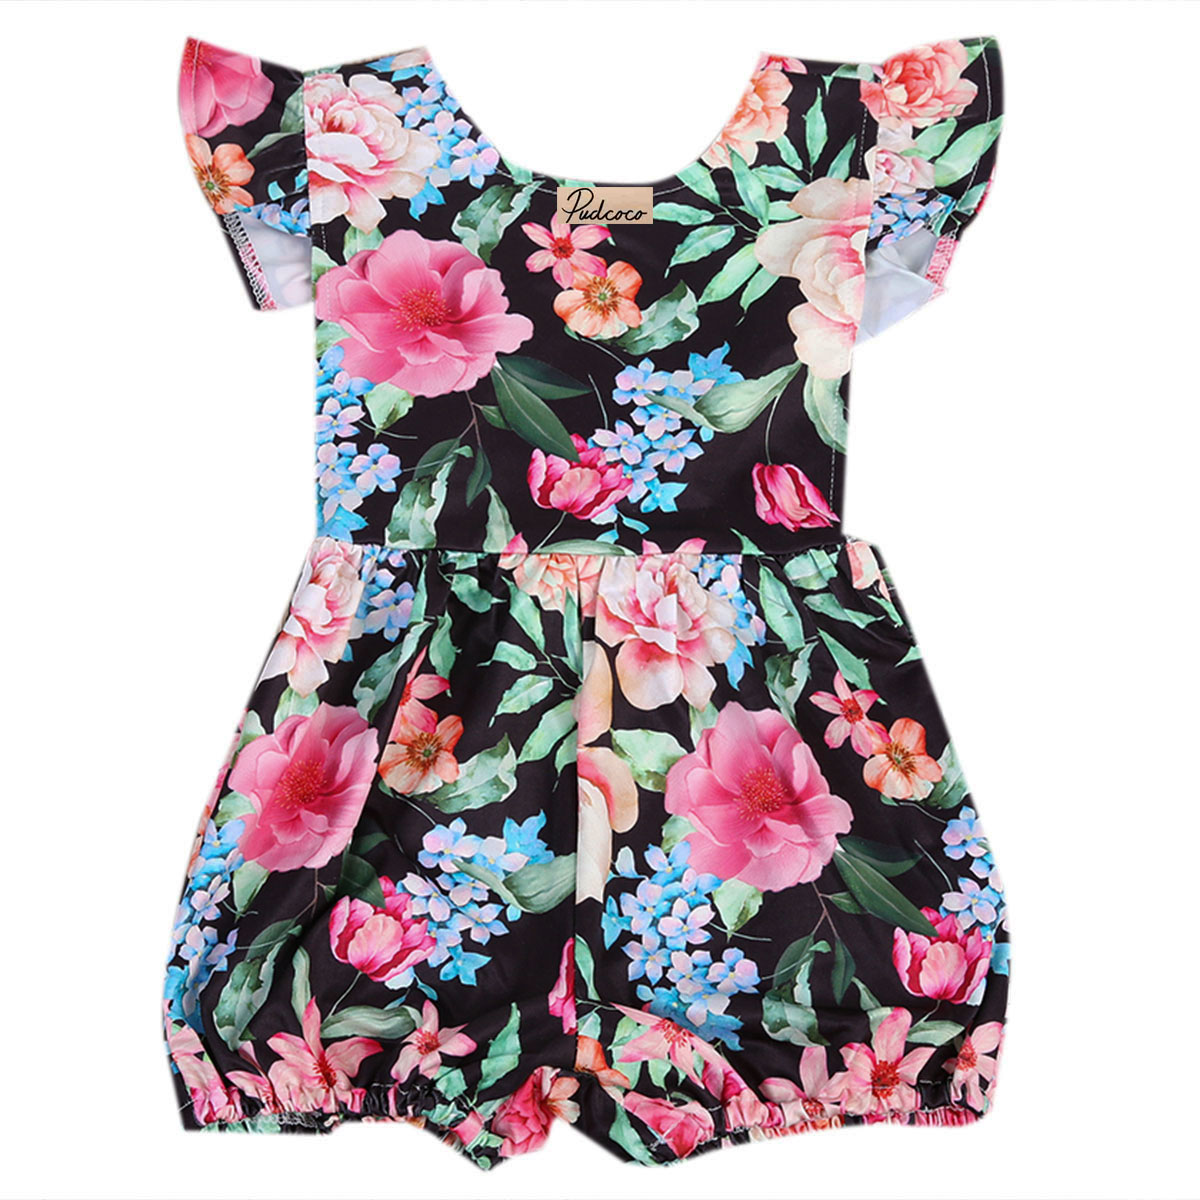 One-Pieces Cute Newborn Infant Baby Girls Sleeveless Black Floral Romper Outfits Summer Sunsuit Clothes cute newborn baby girls clothes floral infant bebes romper cotton jumpsuit one pieces outfit sunsuit 0 18m